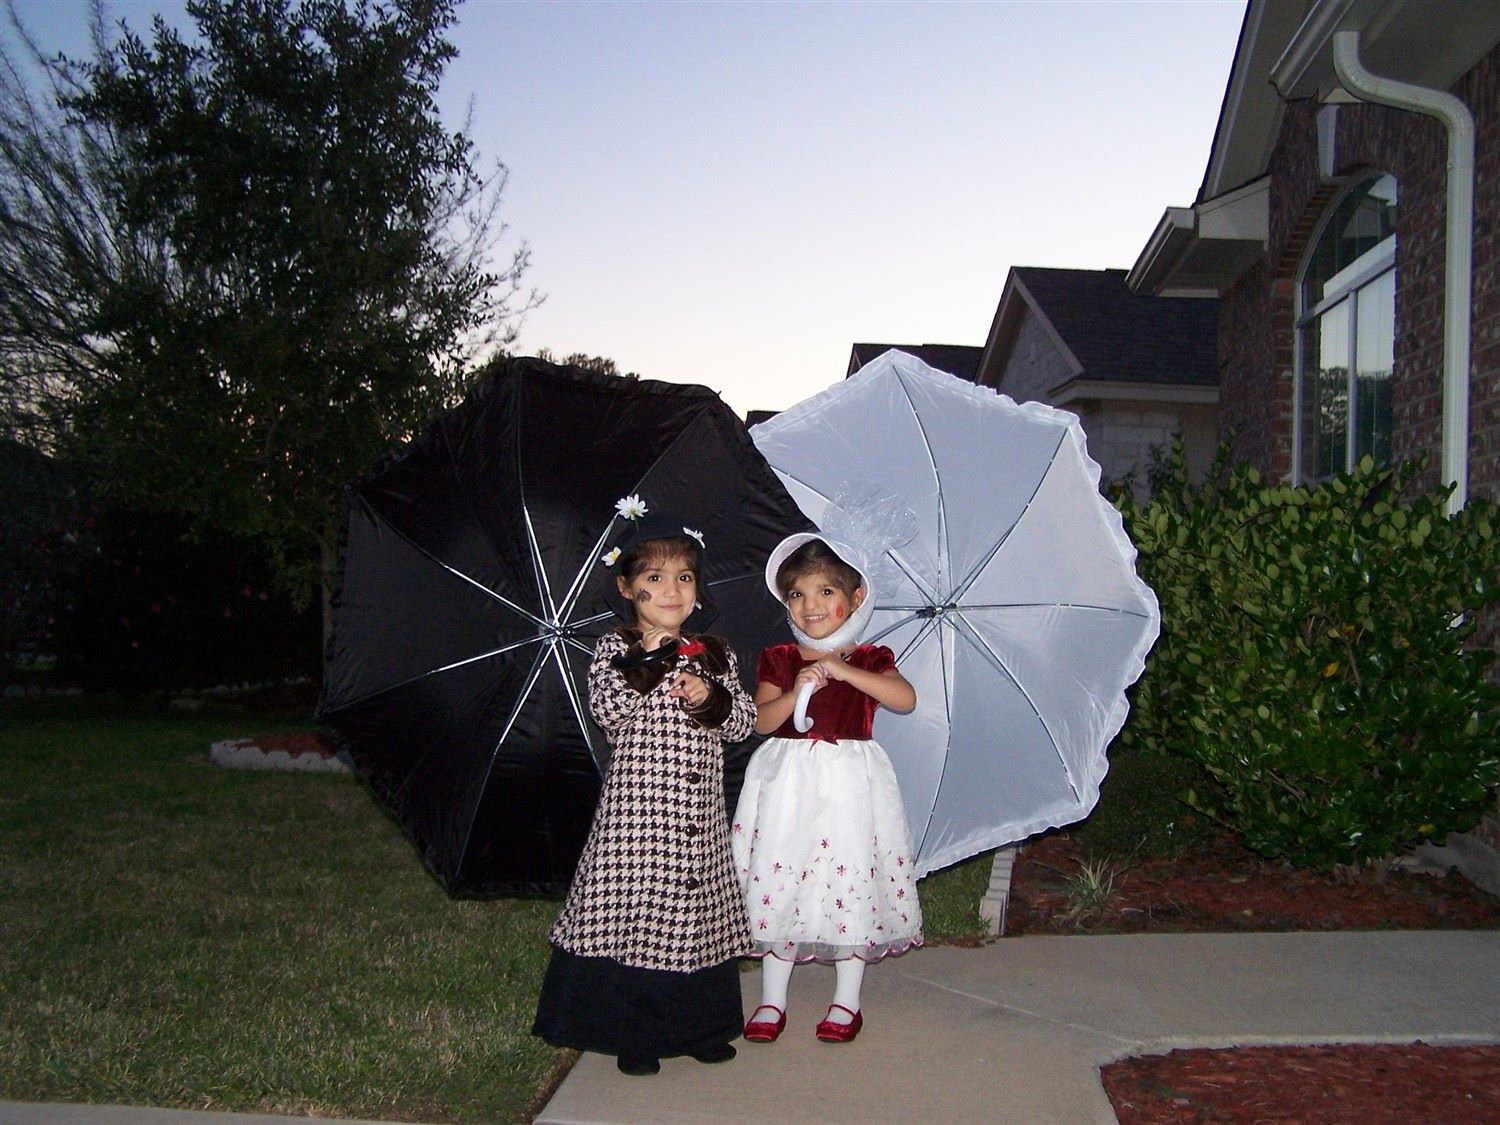 Marry Poppens cute halloween costumes for baby twins